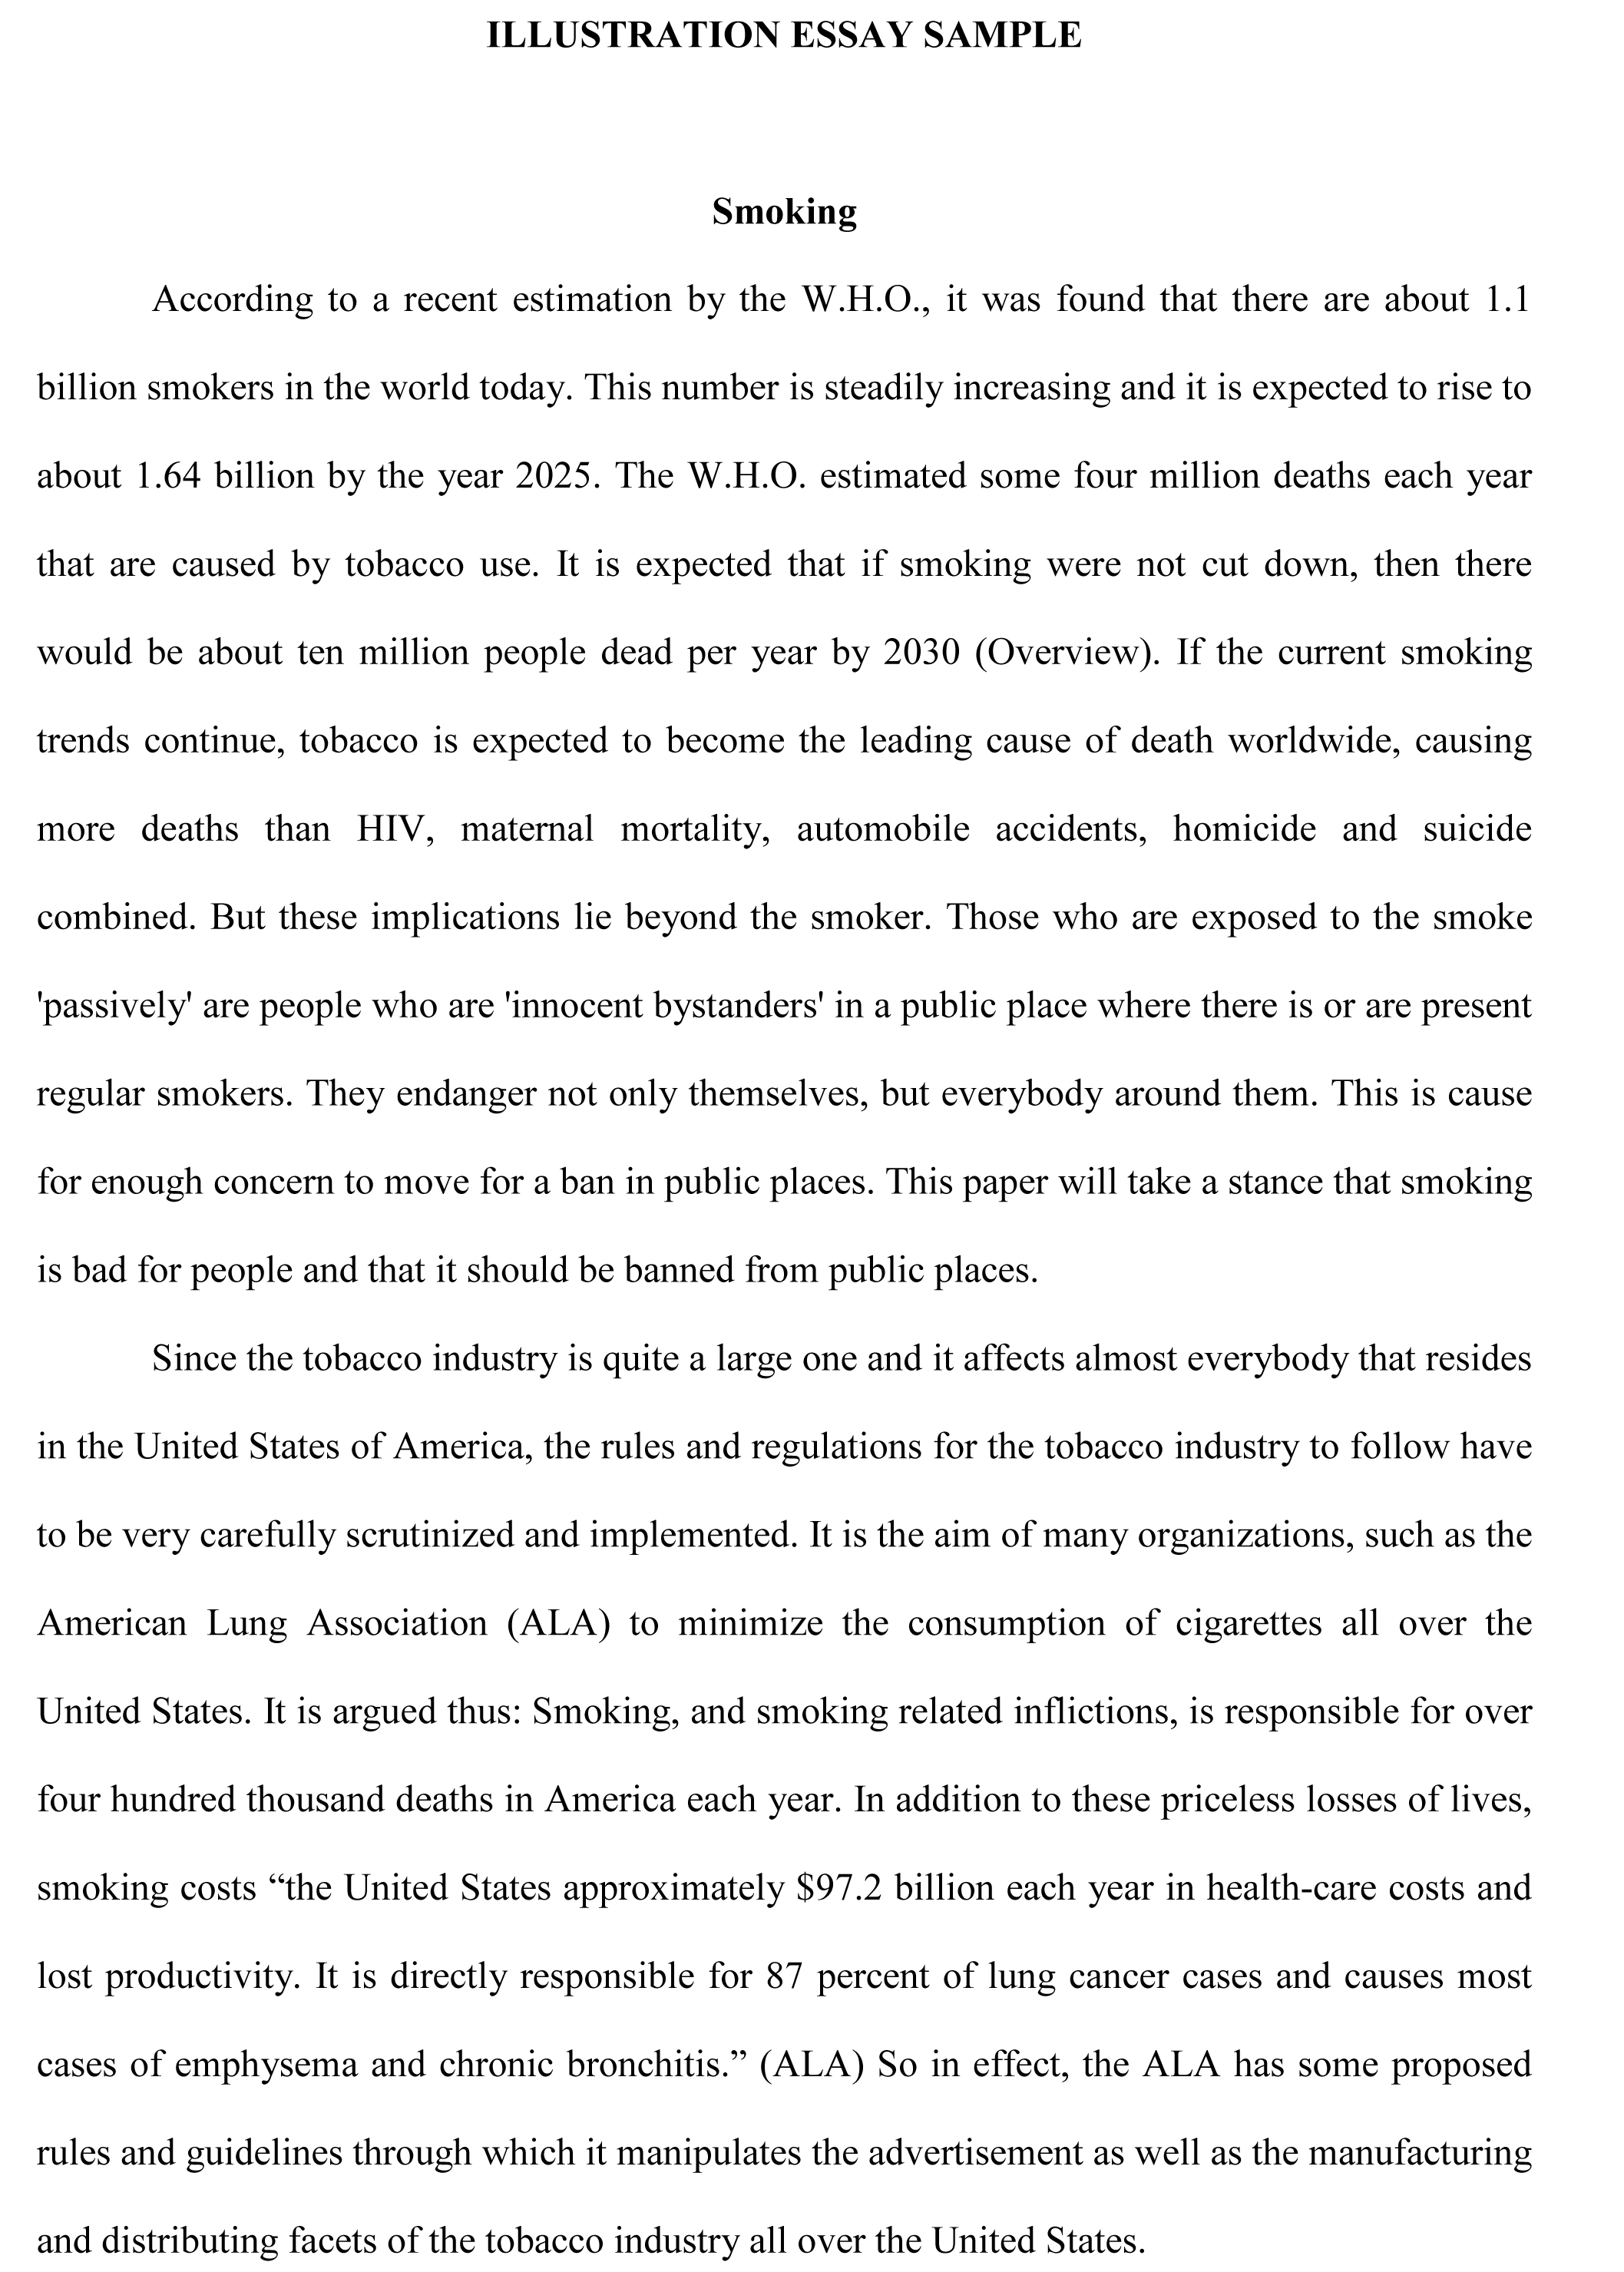 001 Essay Example Illustration Sample Examples Of How To Start Dreaded An Informative Introduction Write About Yourself Pdf Full